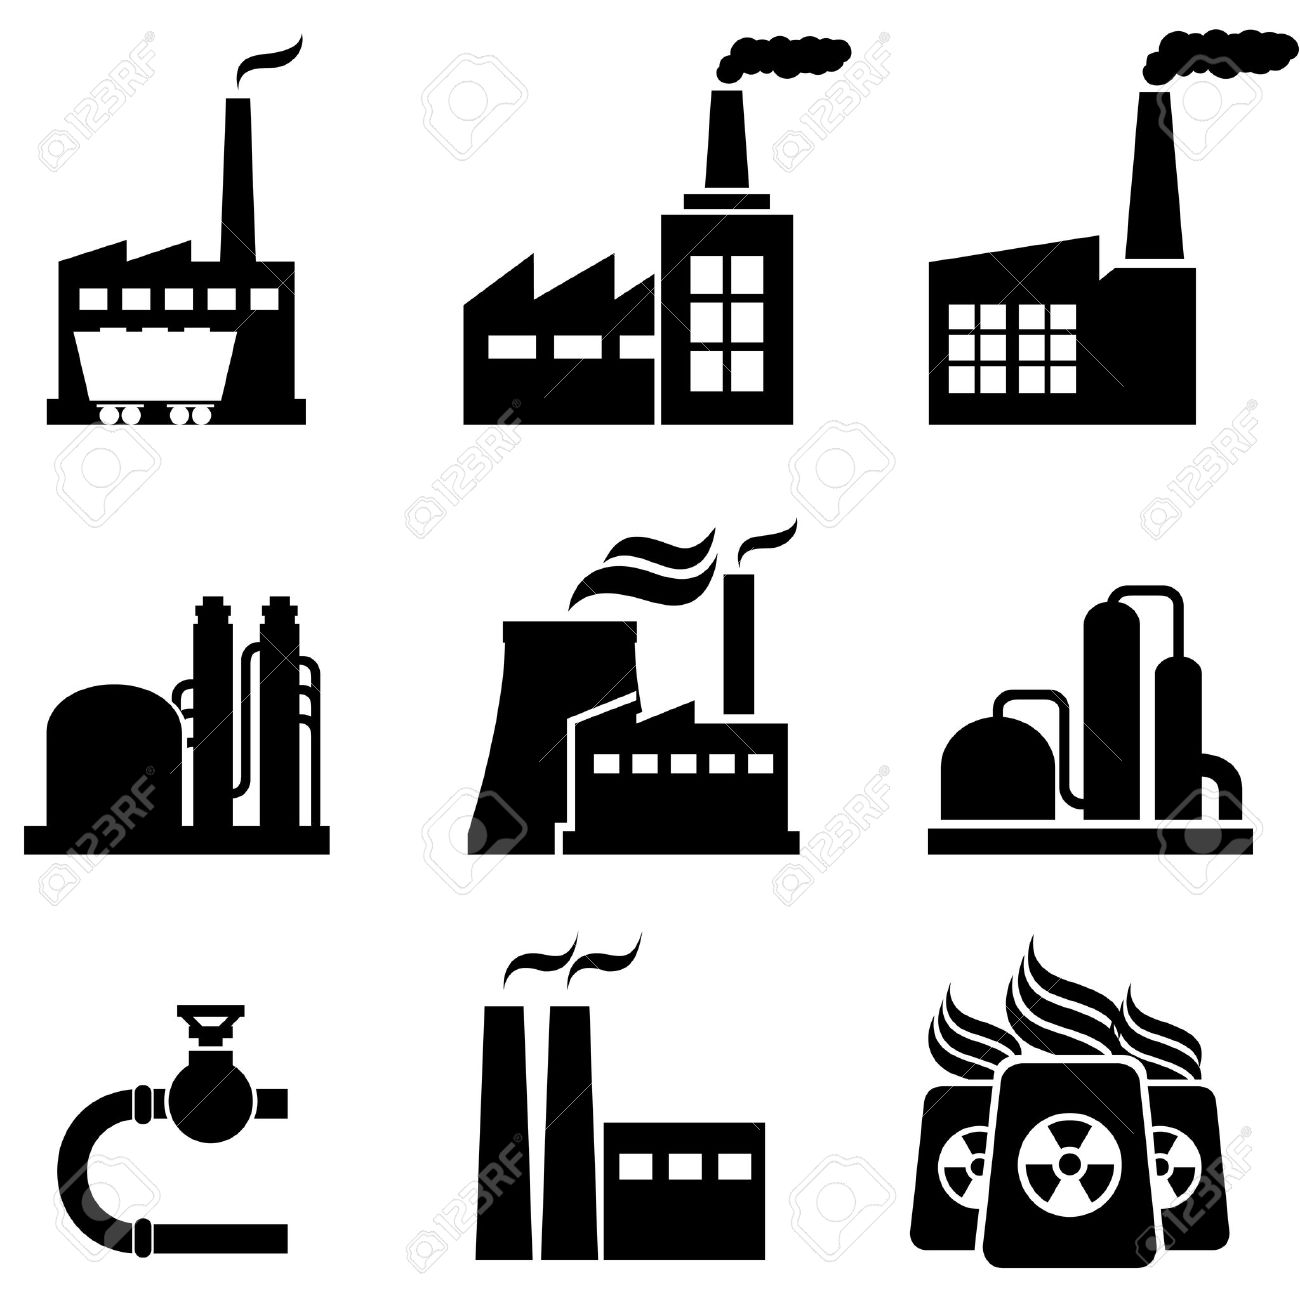 Power Plants, Nuclear Plants, Factories And Industrial Buildings.